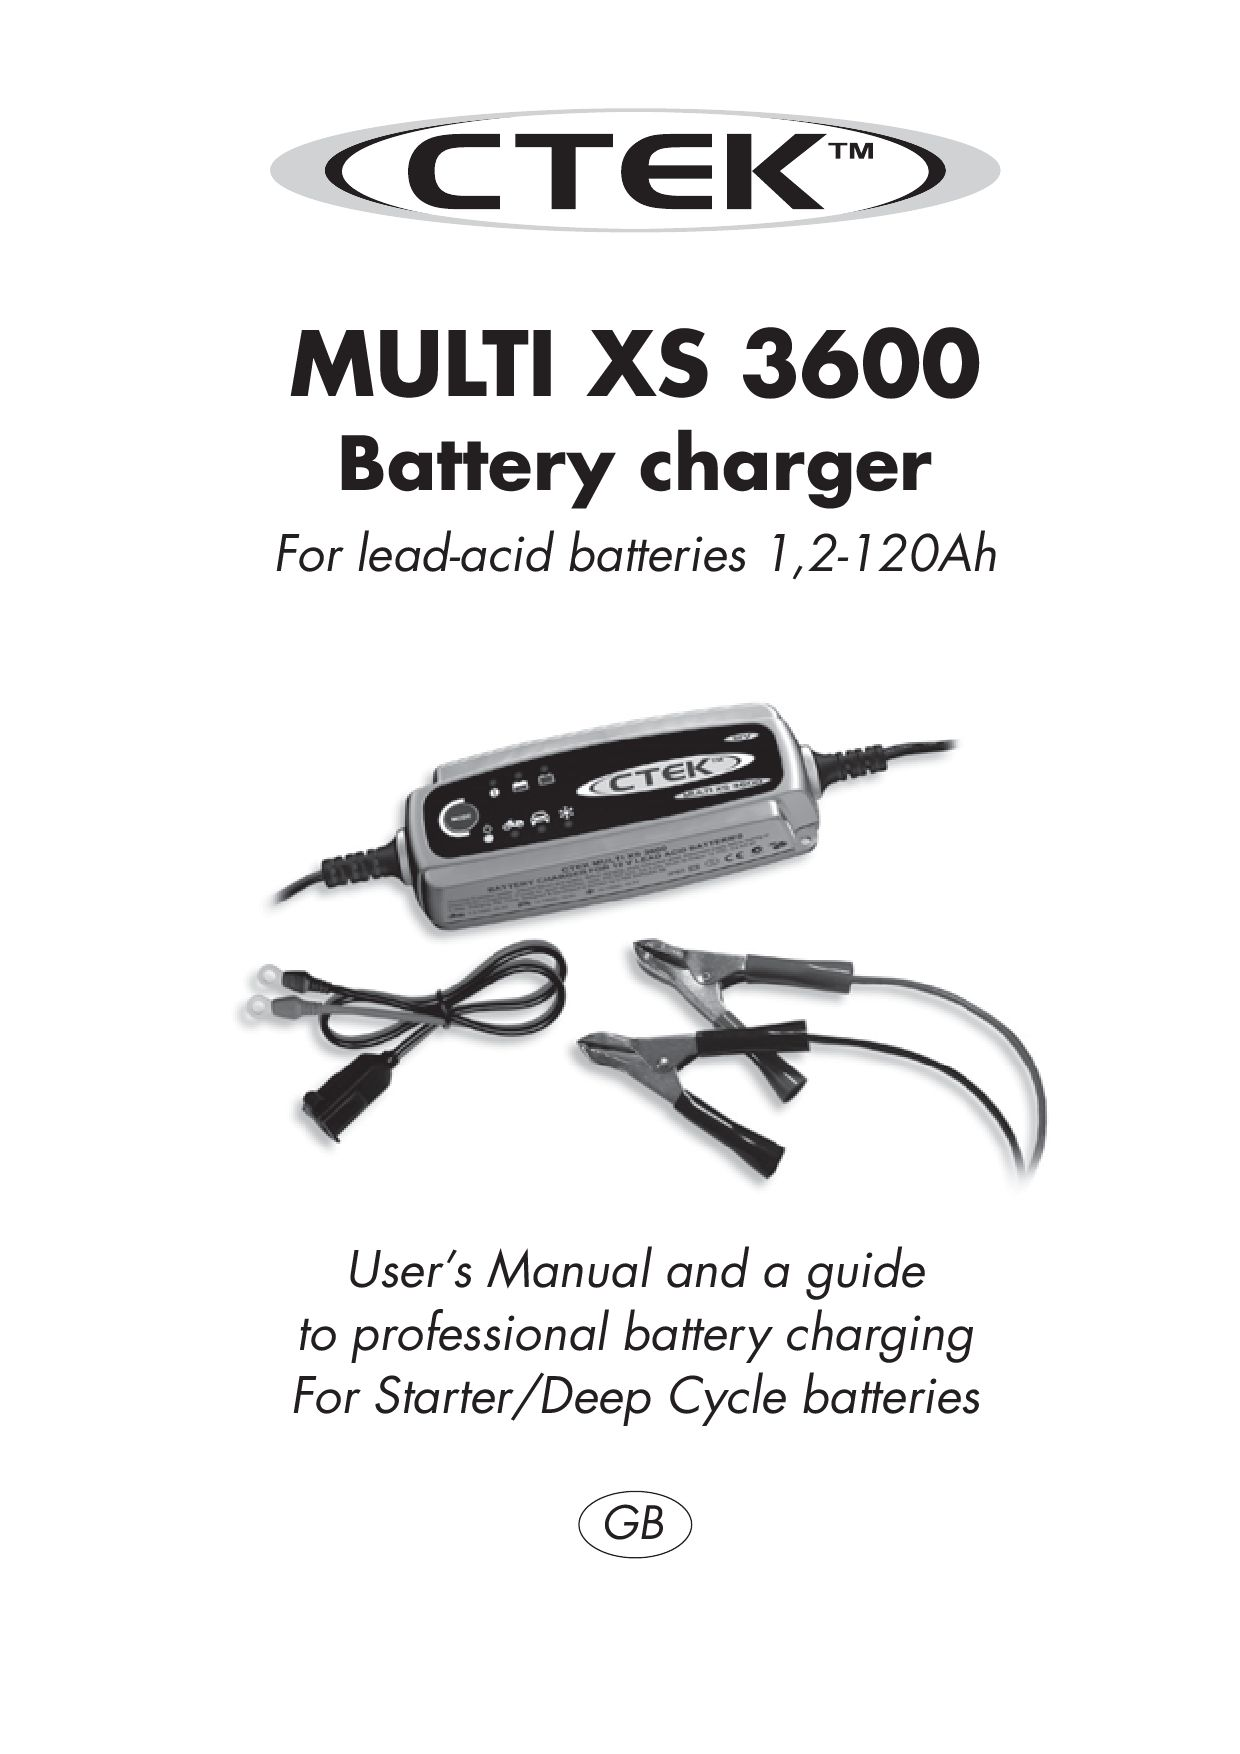 ctek xs3600 charger user manual by talk audio online. Black Bedroom Furniture Sets. Home Design Ideas